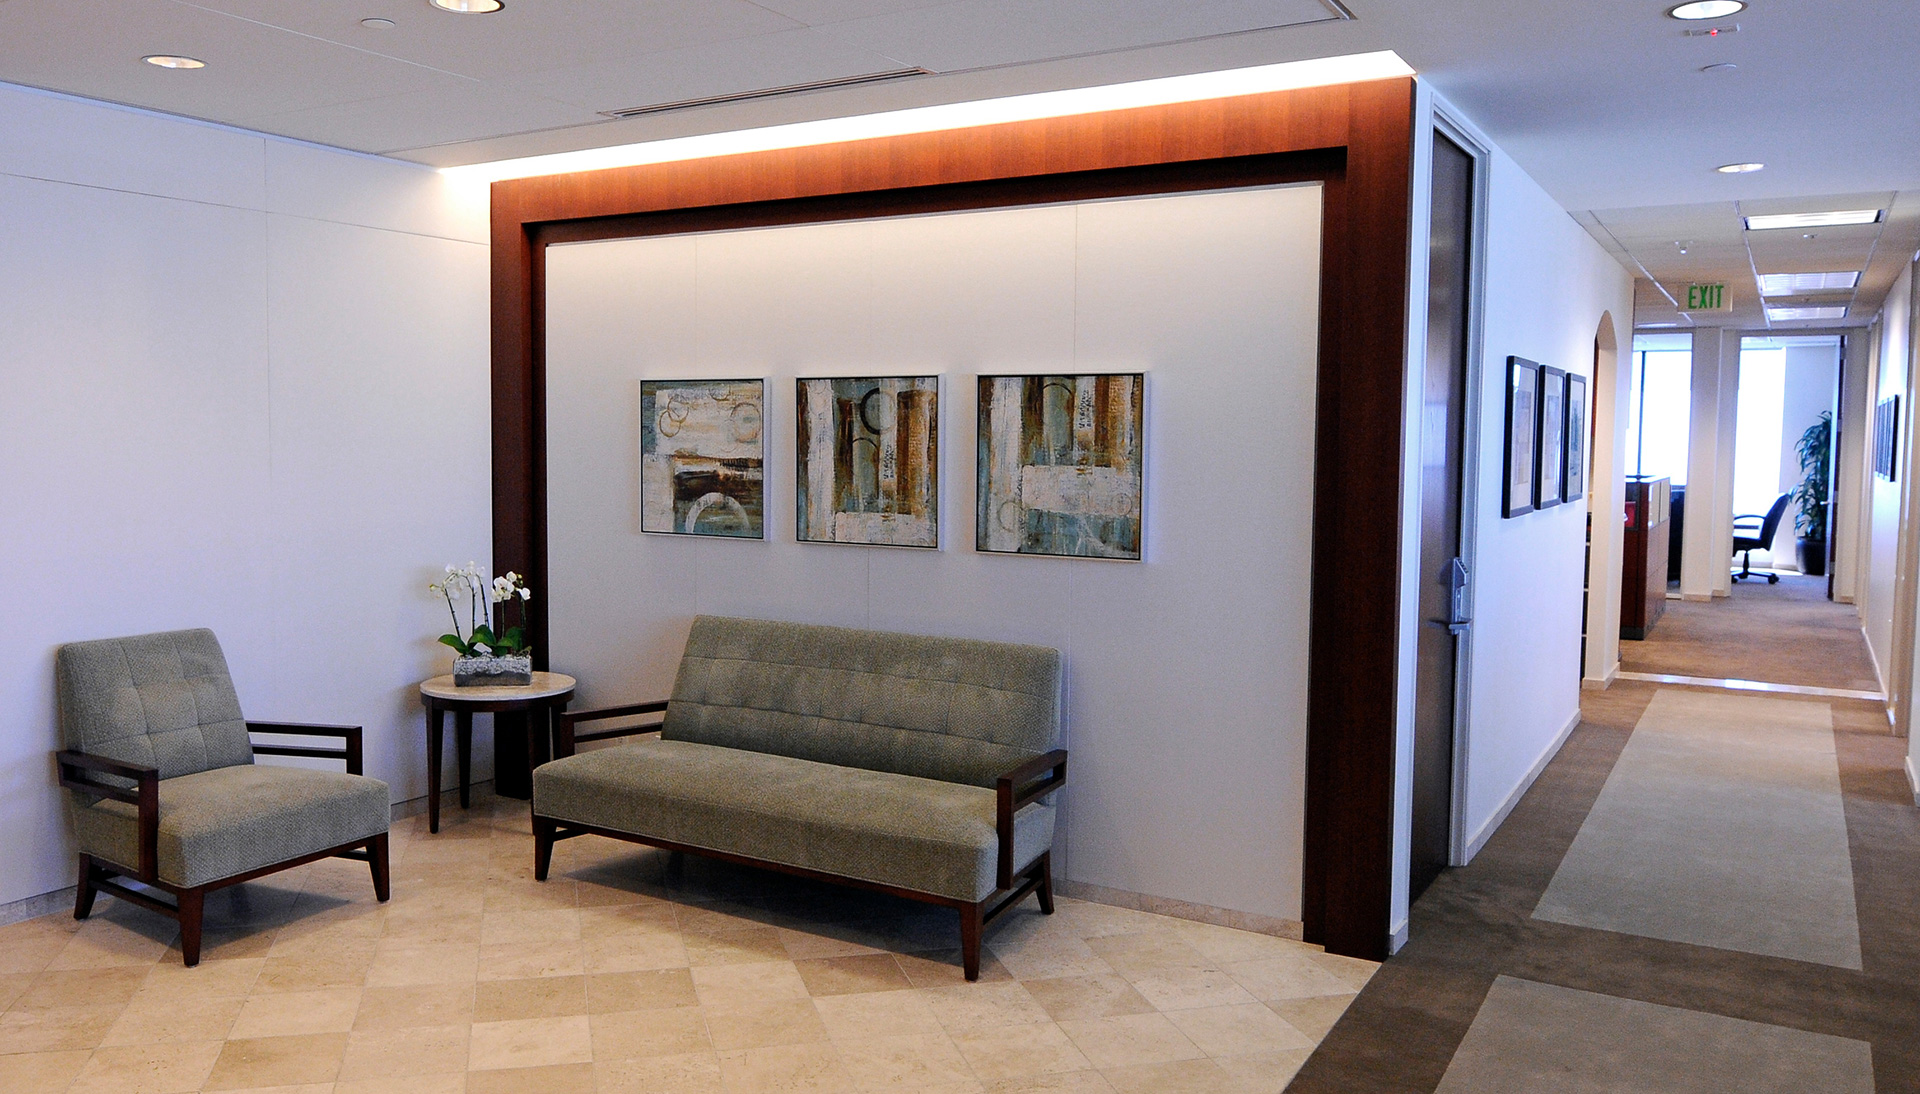 Architectural Design Projects - Waiting Room